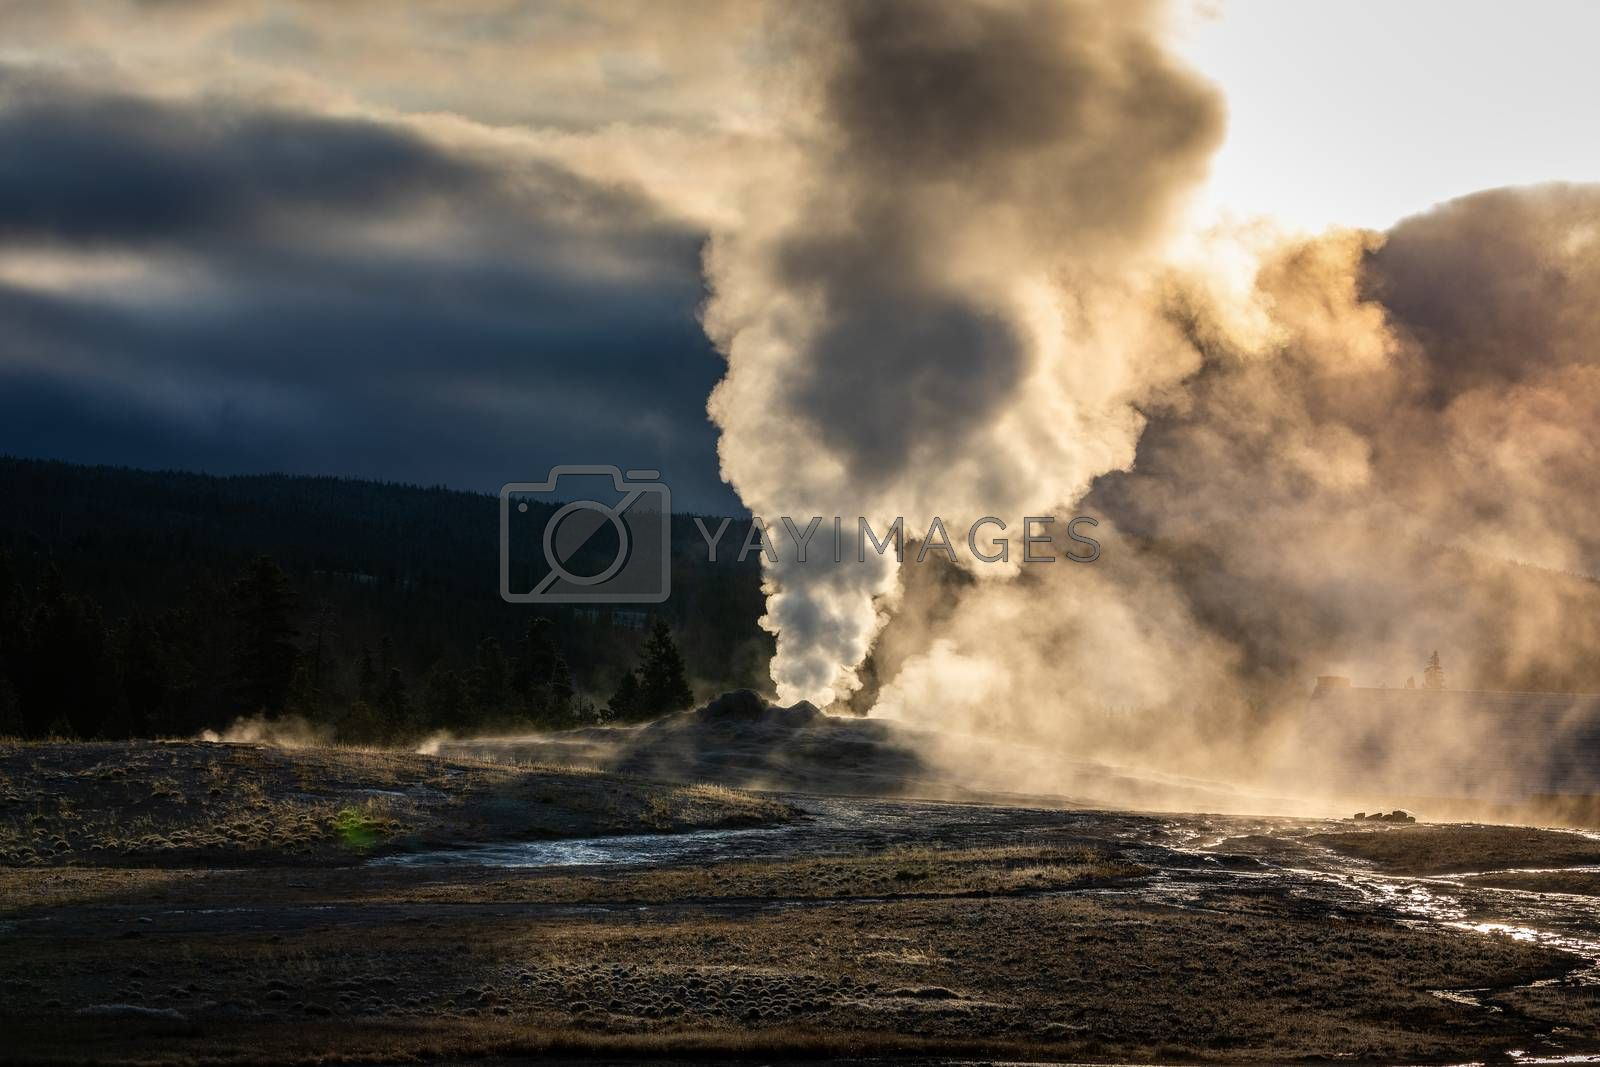 Old Faithful, famous geyser of Yellowstone National Park, Wyoming, USA, exploding hot smoke in the air before next eruption with warm sunlight at sunrise.